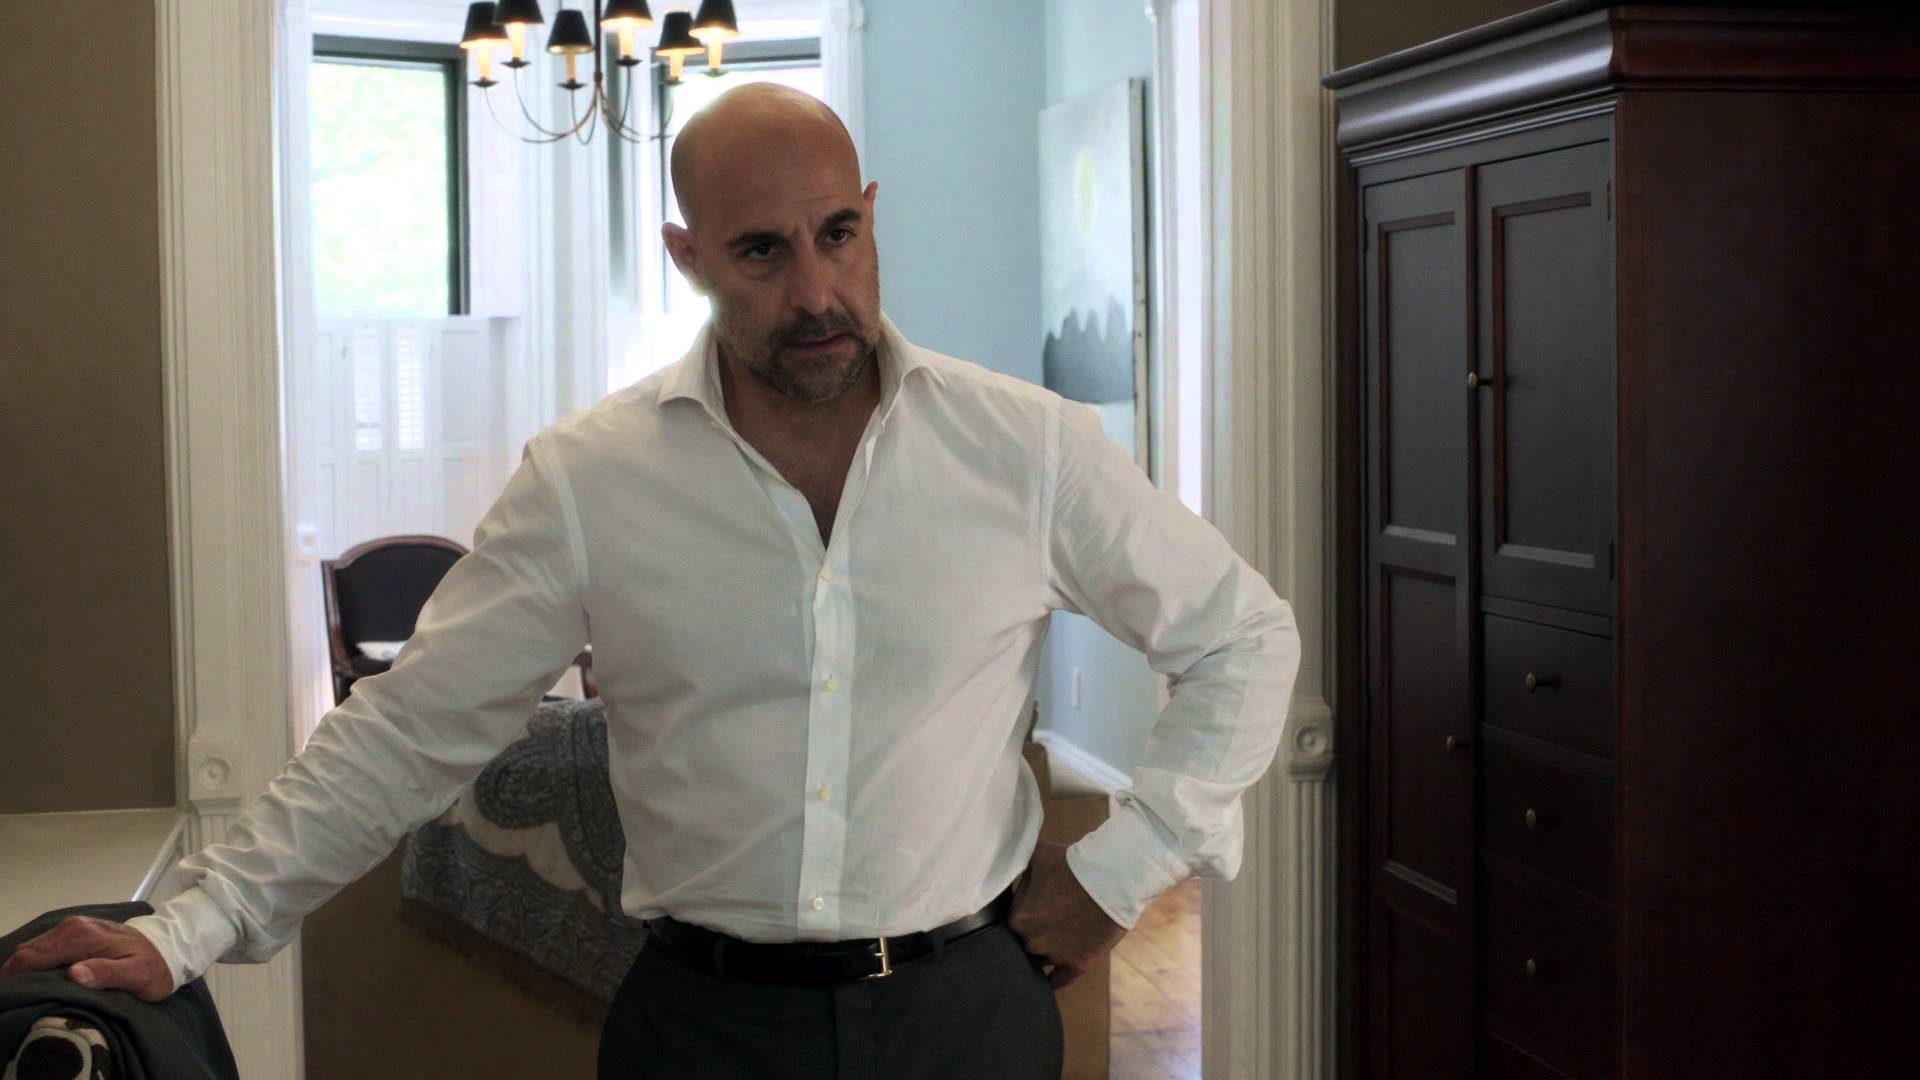 Stanley Tucci HD Desktop Wallpapers | 7wallpapers.net